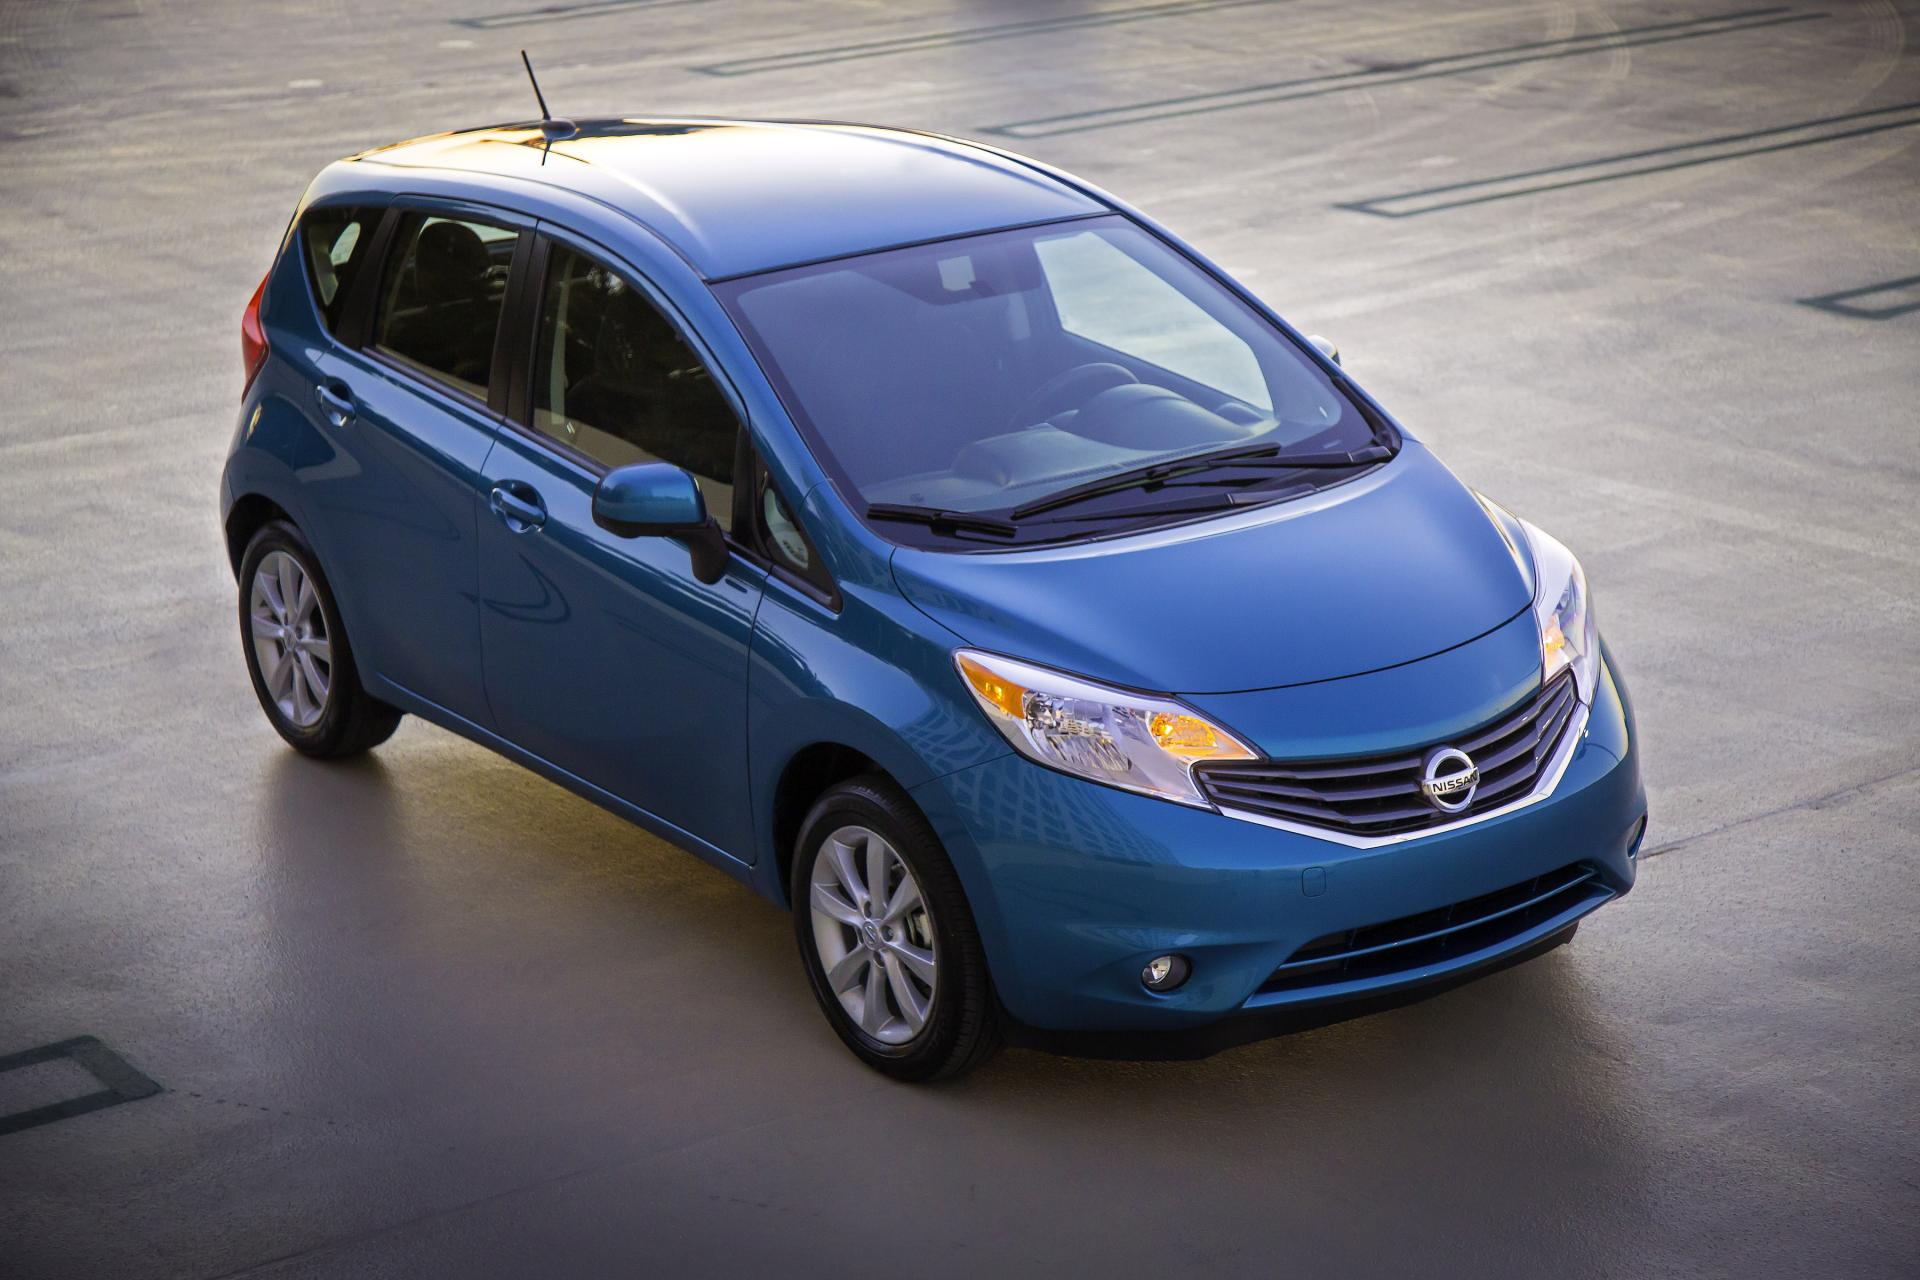 2014 nissan versa note technical specifications and data. Black Bedroom Furniture Sets. Home Design Ideas